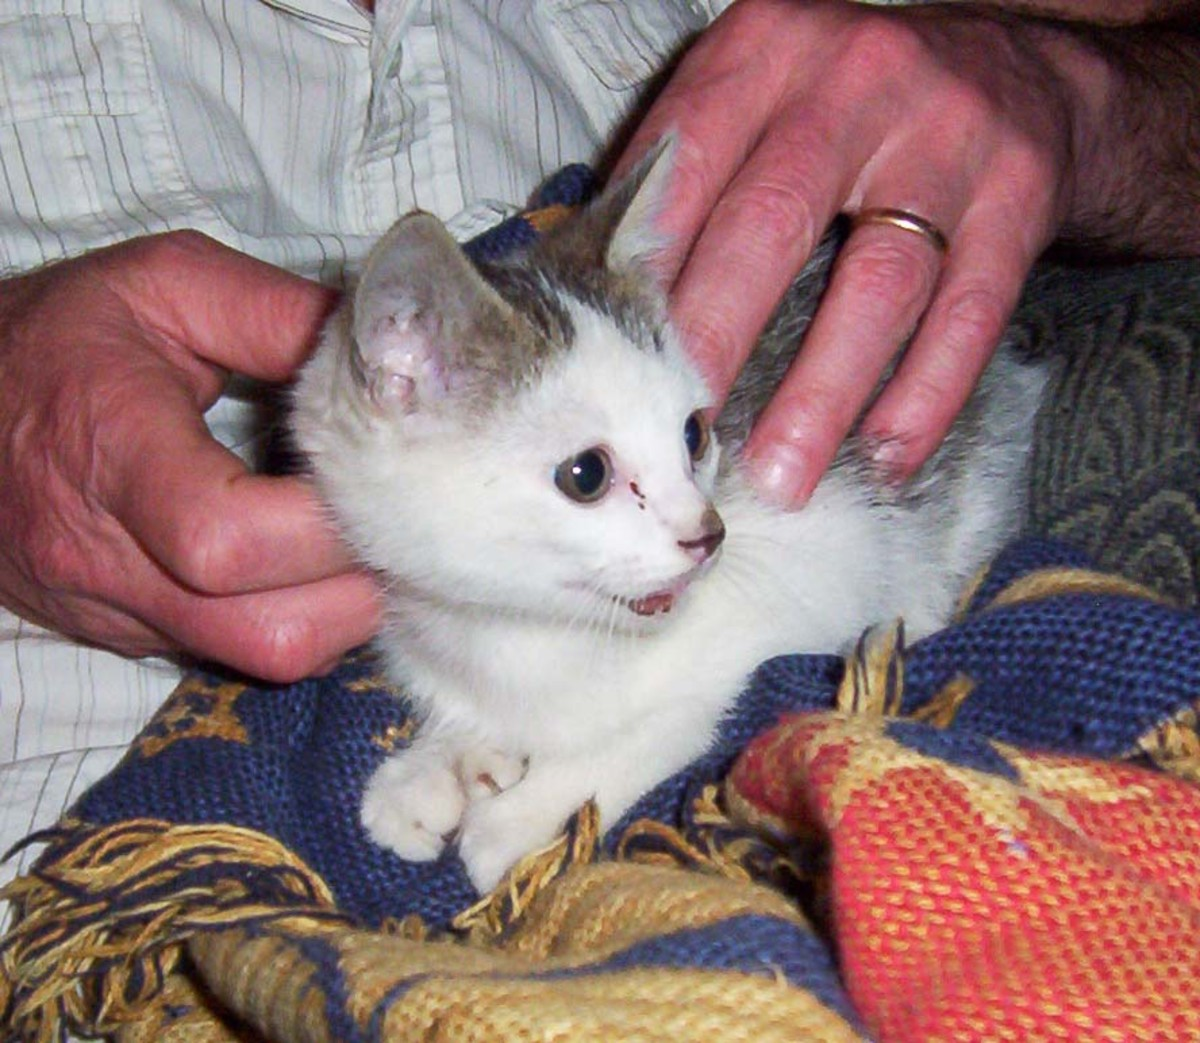 Kittens - Help, I Found a Kitten, What Should I Do